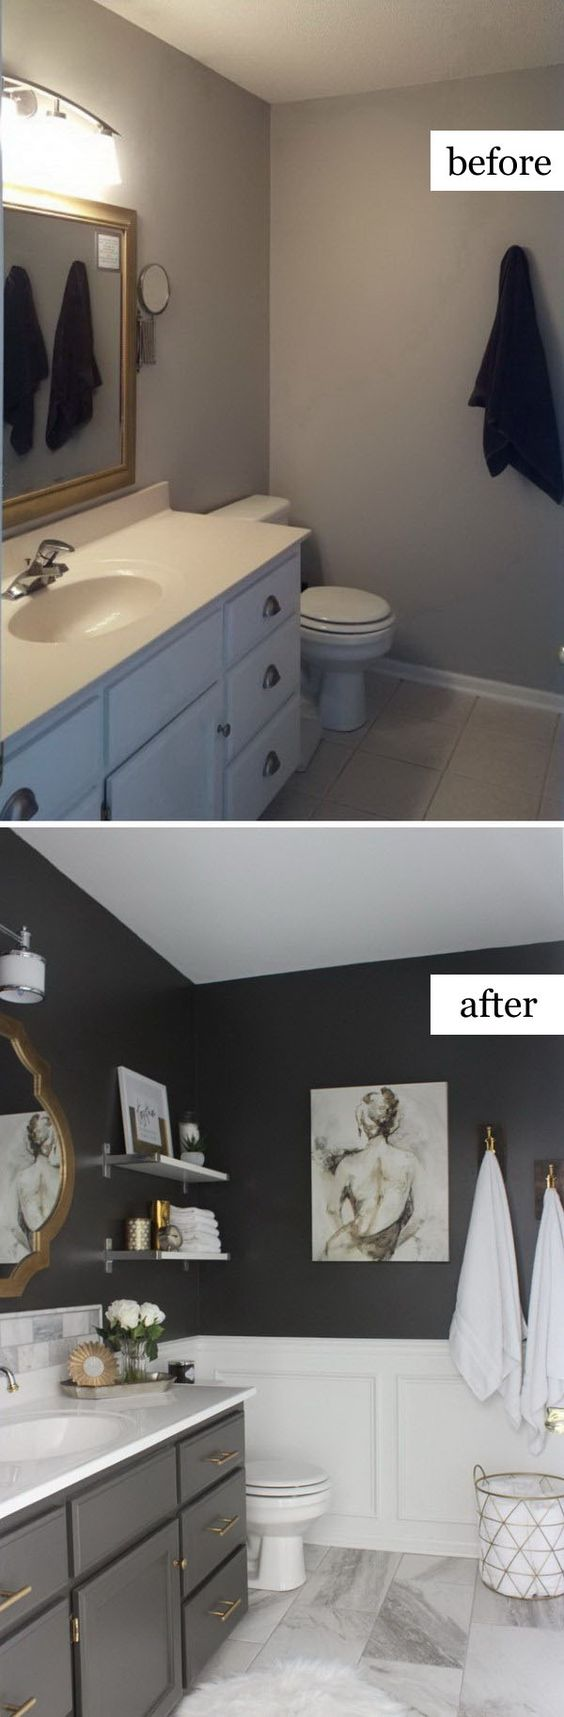 10 before and after bathroom remodel ideas for 2016 2017 for Bathroom wall remodel ideas